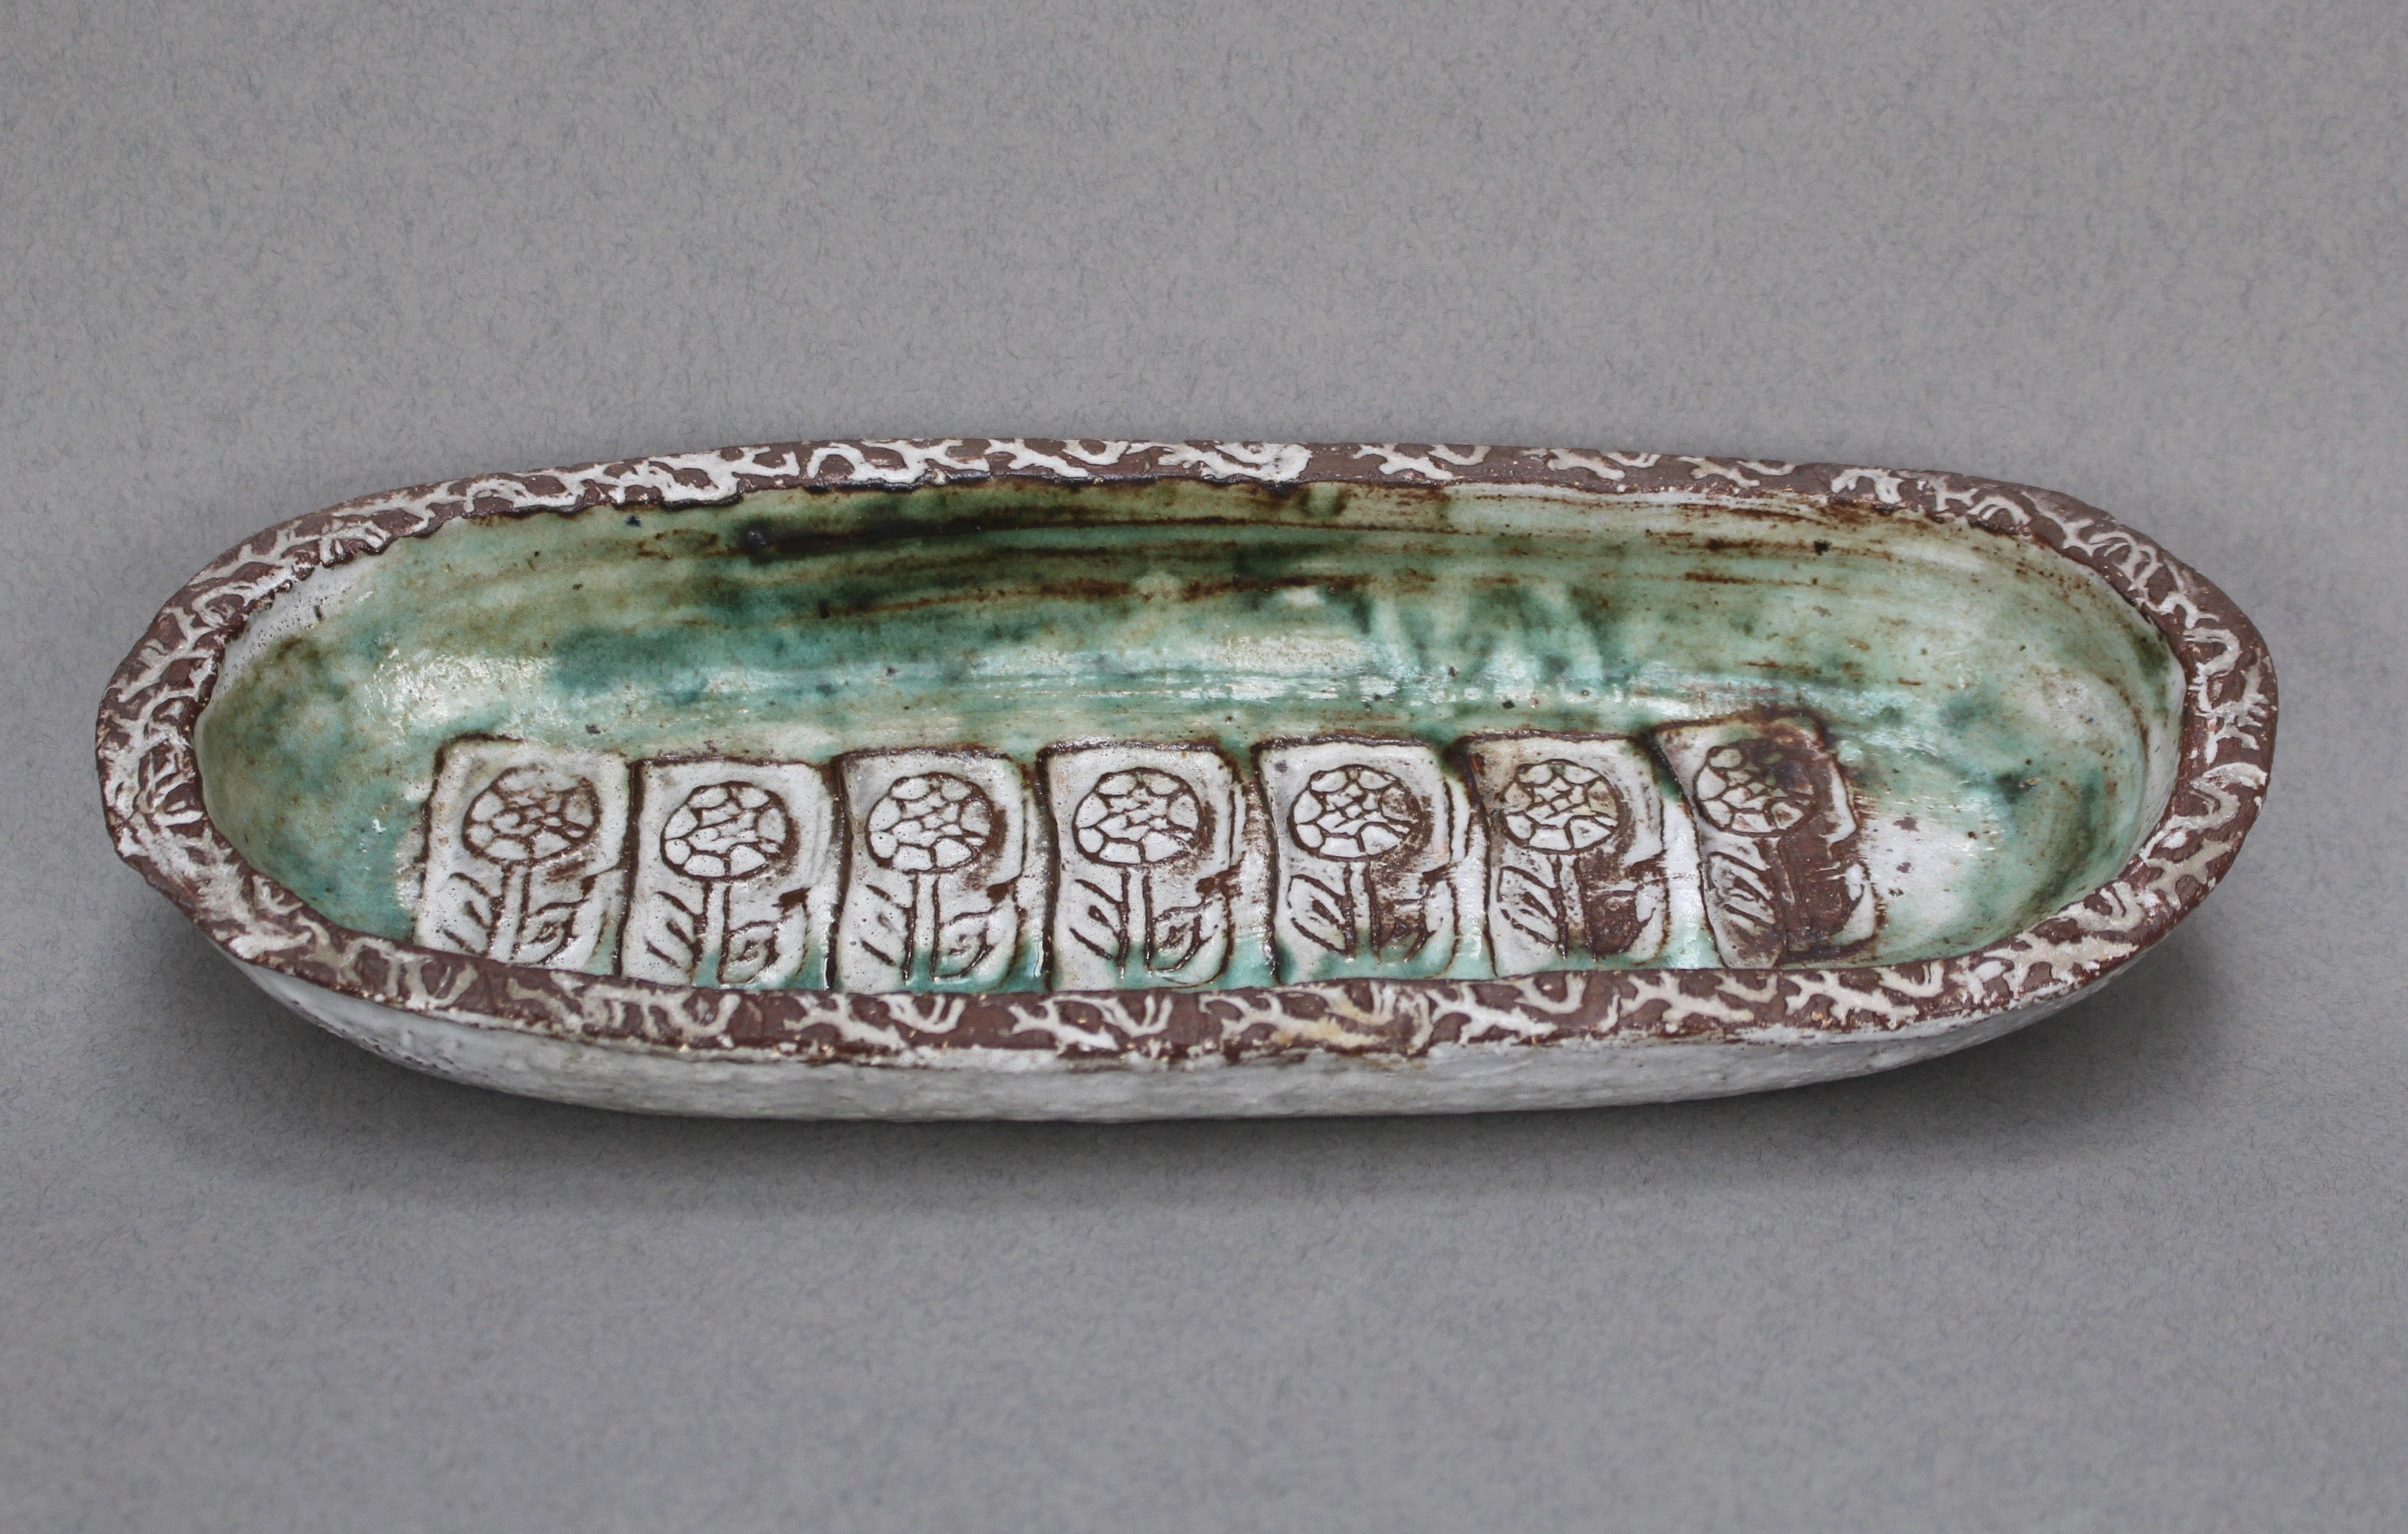 Ceramic Decorative Dish by Albert Thiry (c. 1960s)